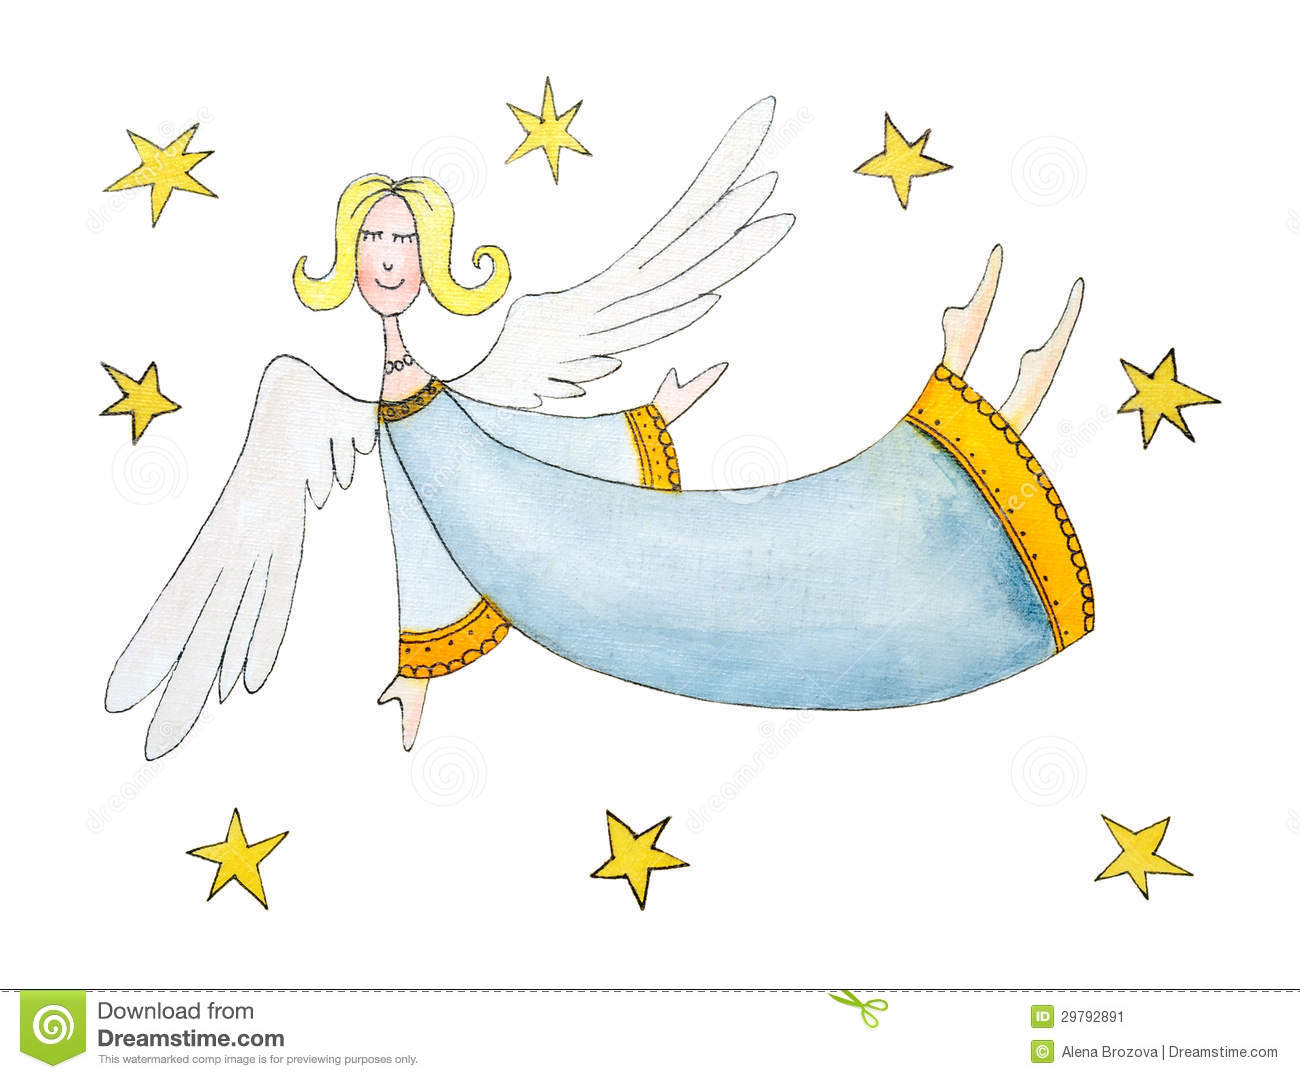 Angel with stars, childs drawing, watercolor paint